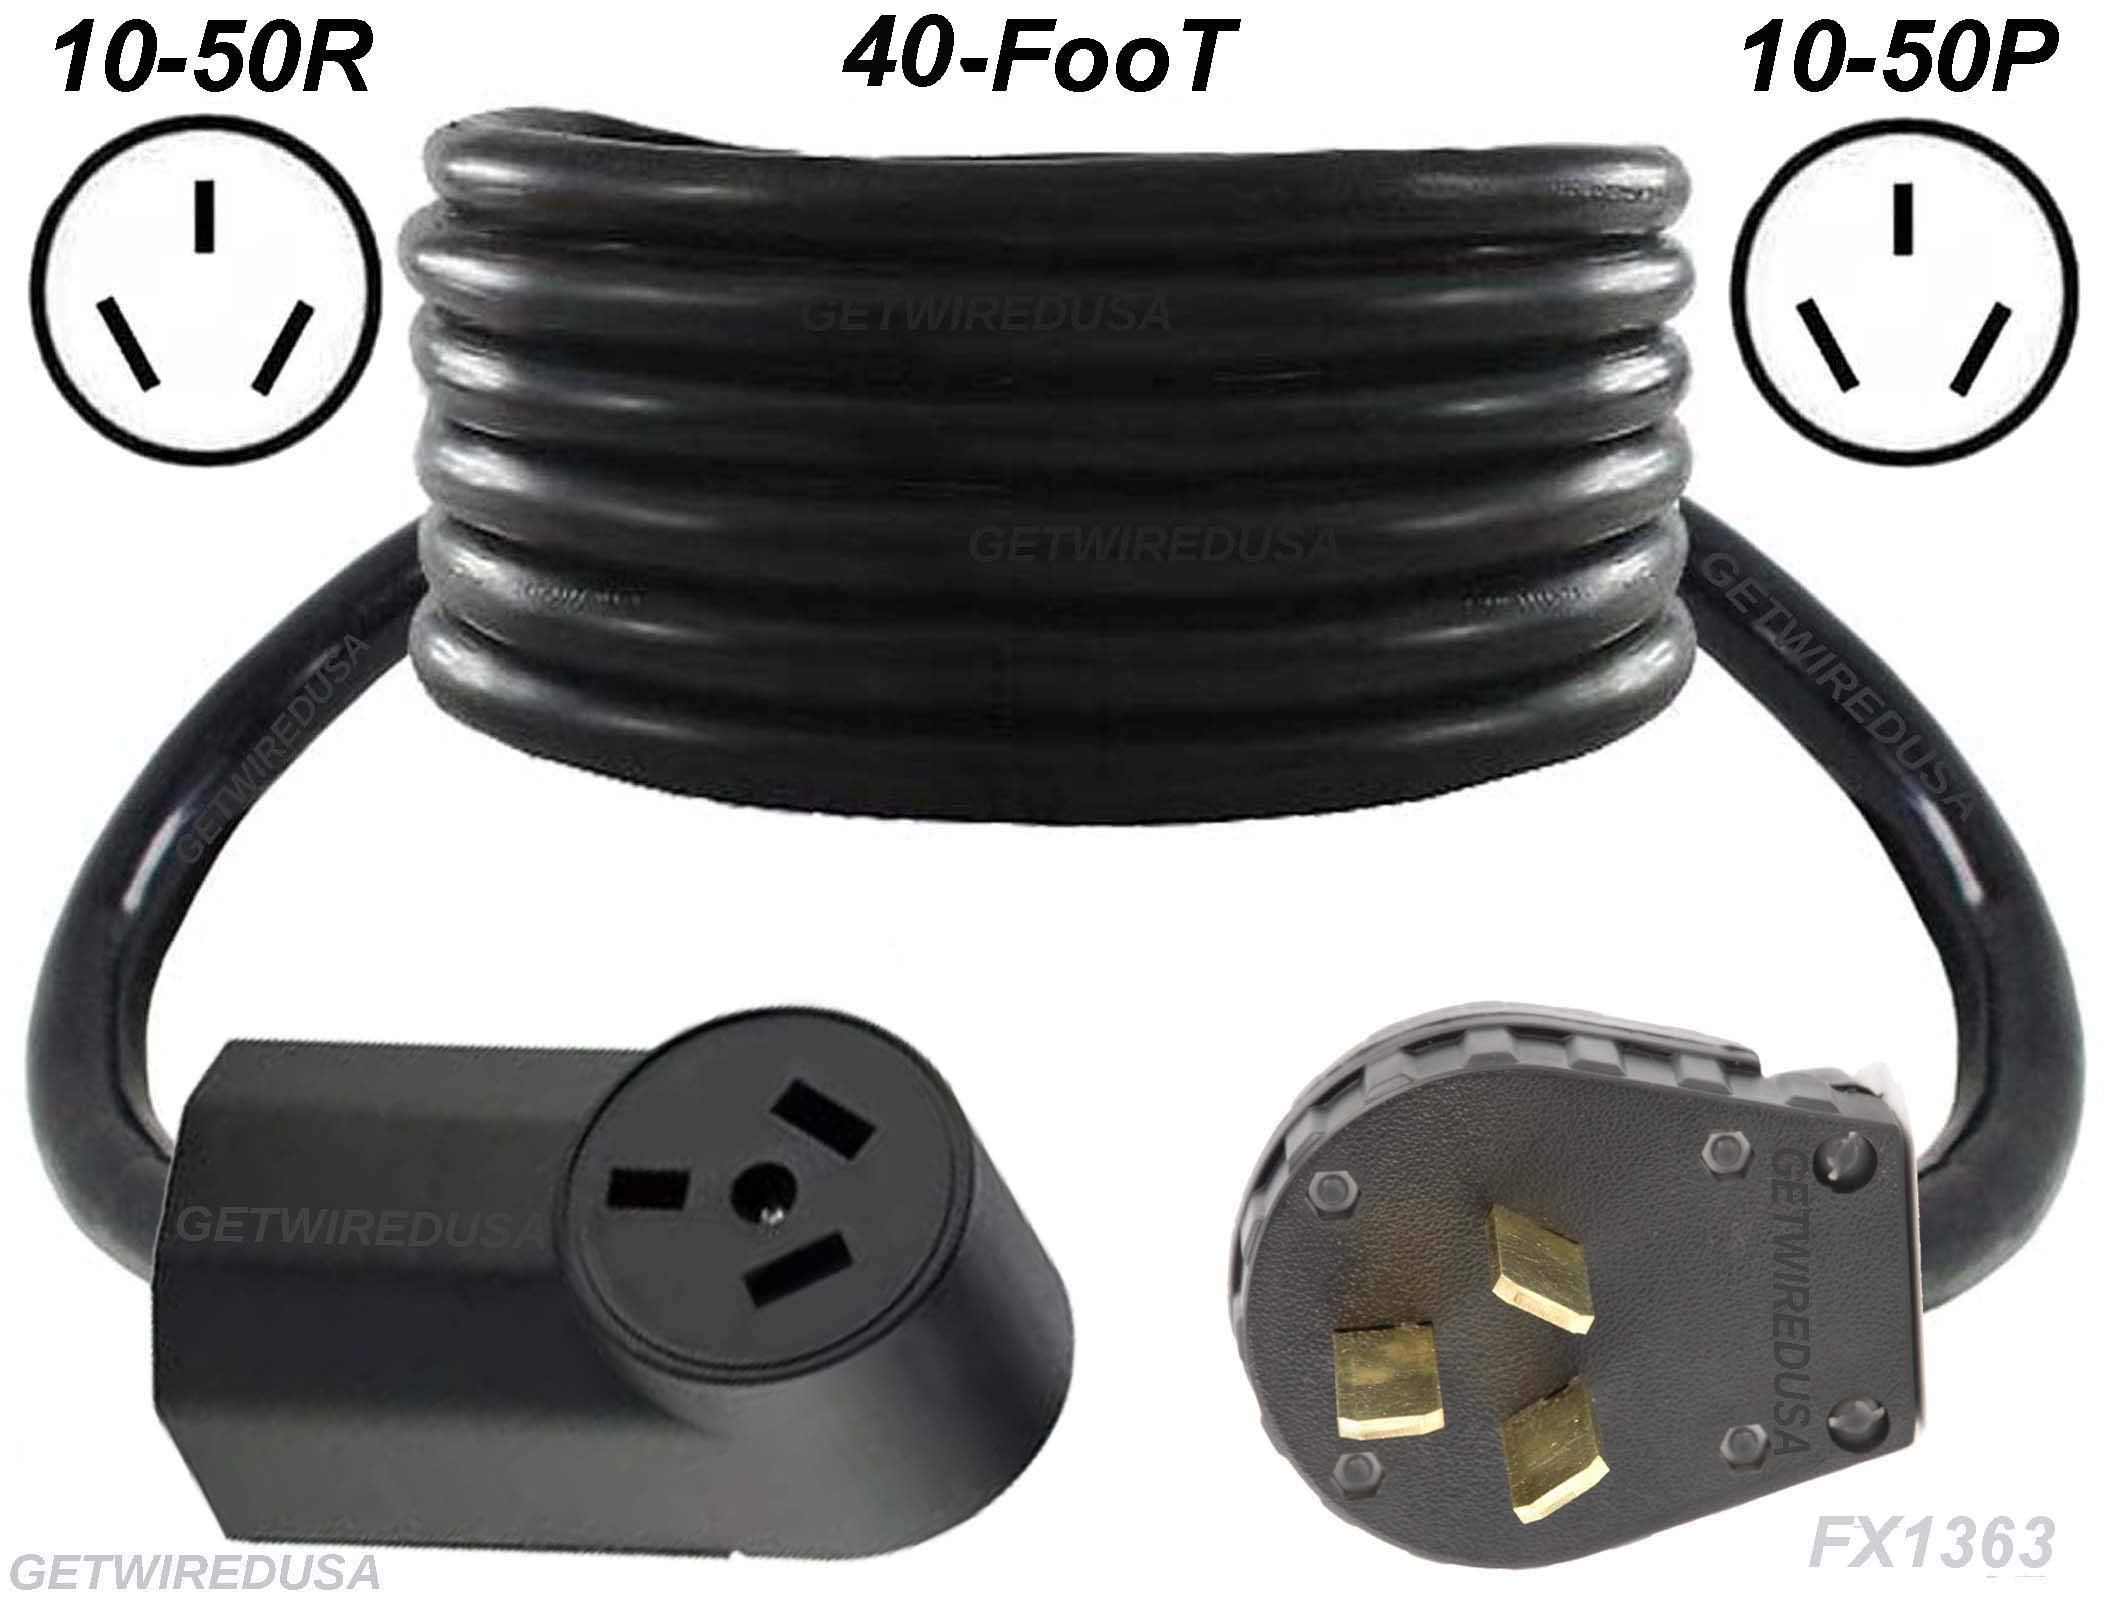 Range, Stove, Oven, 40-FT Extension Cord 10-50P Male 3-Pin Plug To 10-50R Female Receptacle, Heavy Duty, Real Copper Wire, 10/3 10AWG 10-Gauge, NEMA, 40-Foot Long, Made In American, FX1363-R by GWTEIREDUSA